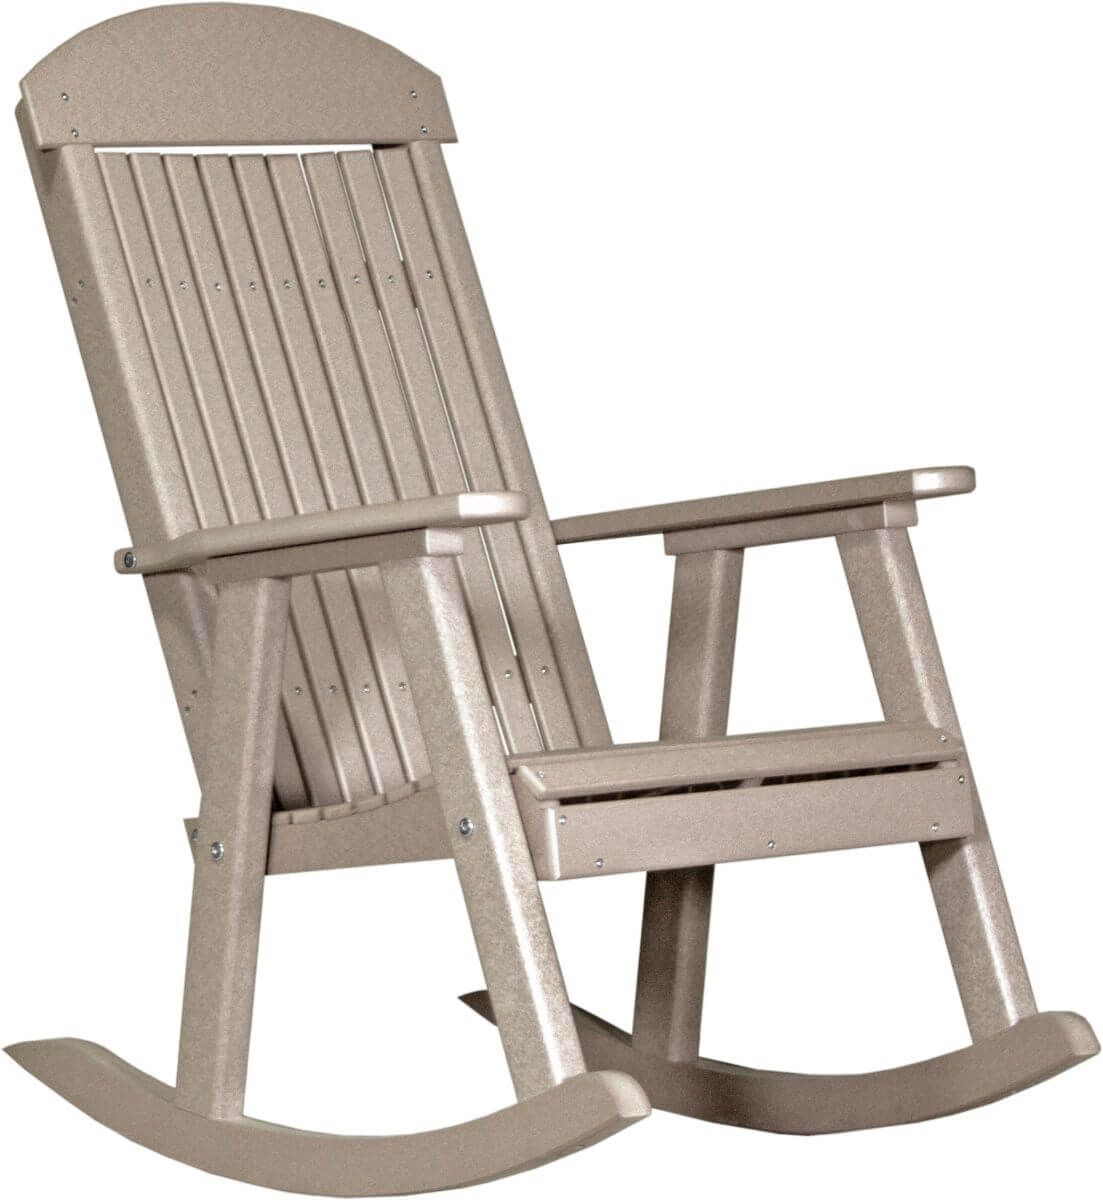 Weatherwood Stockton Porch Rocker